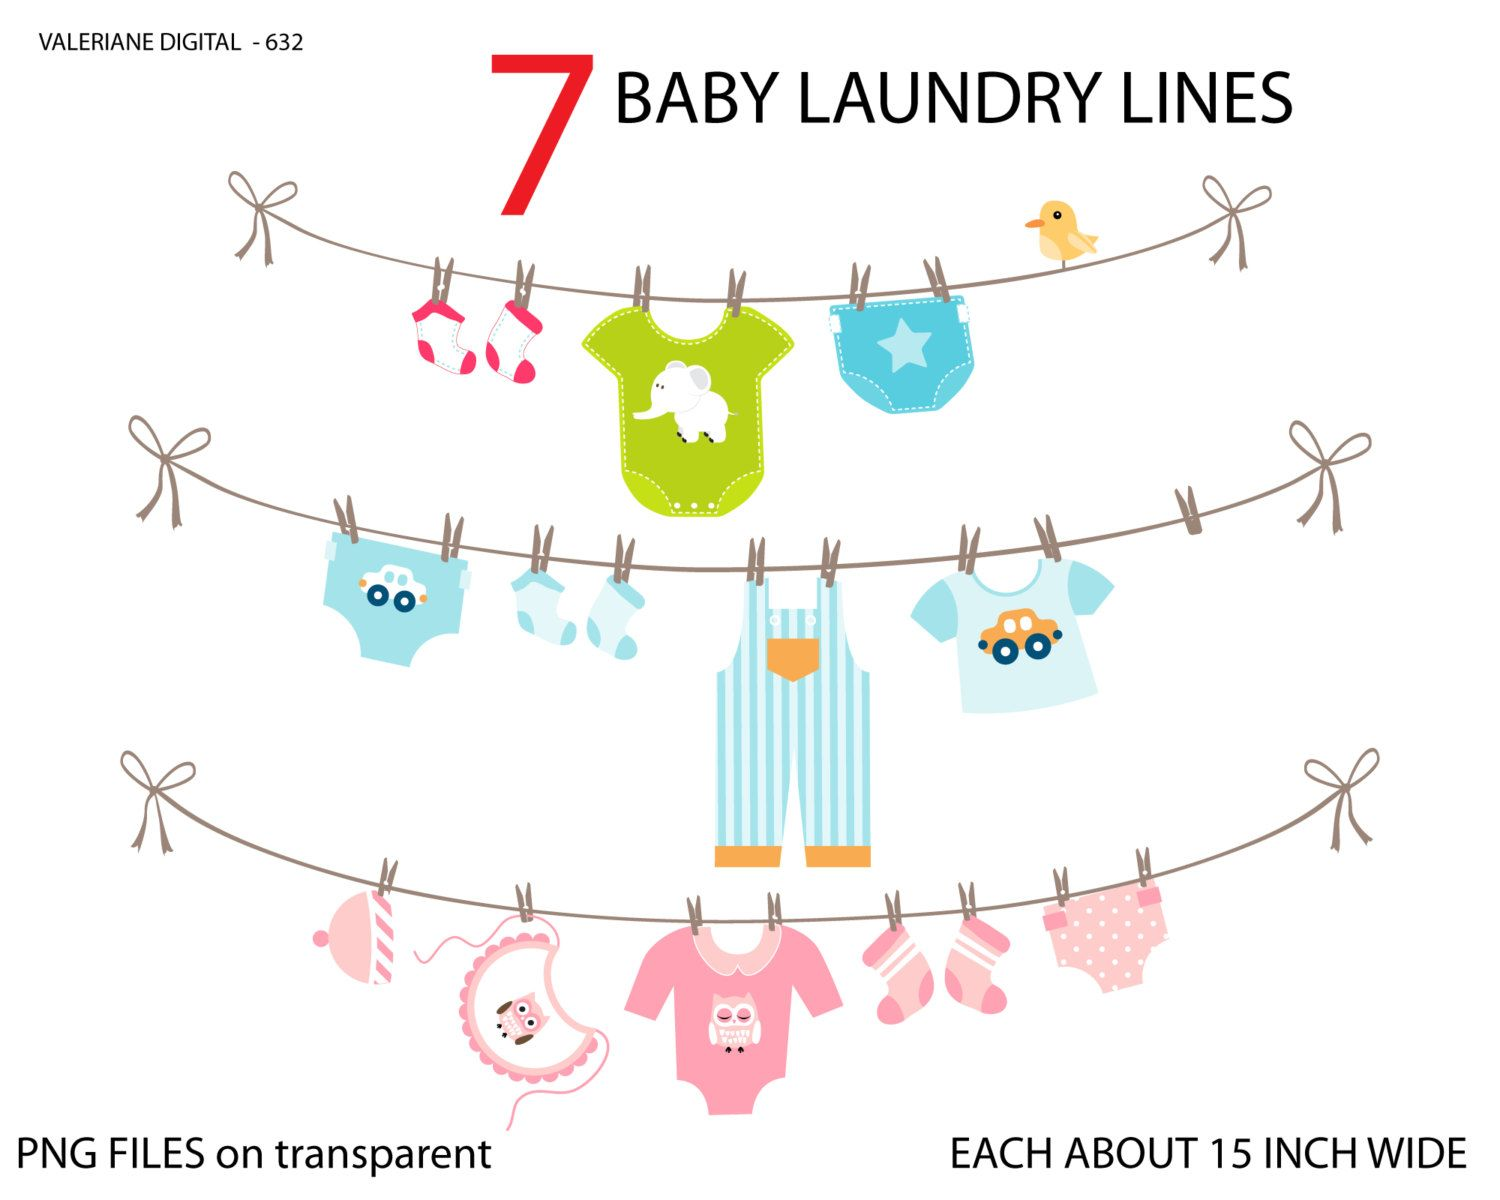 Baby laundry line clipart, baby clothes line clip art, clipart for ...